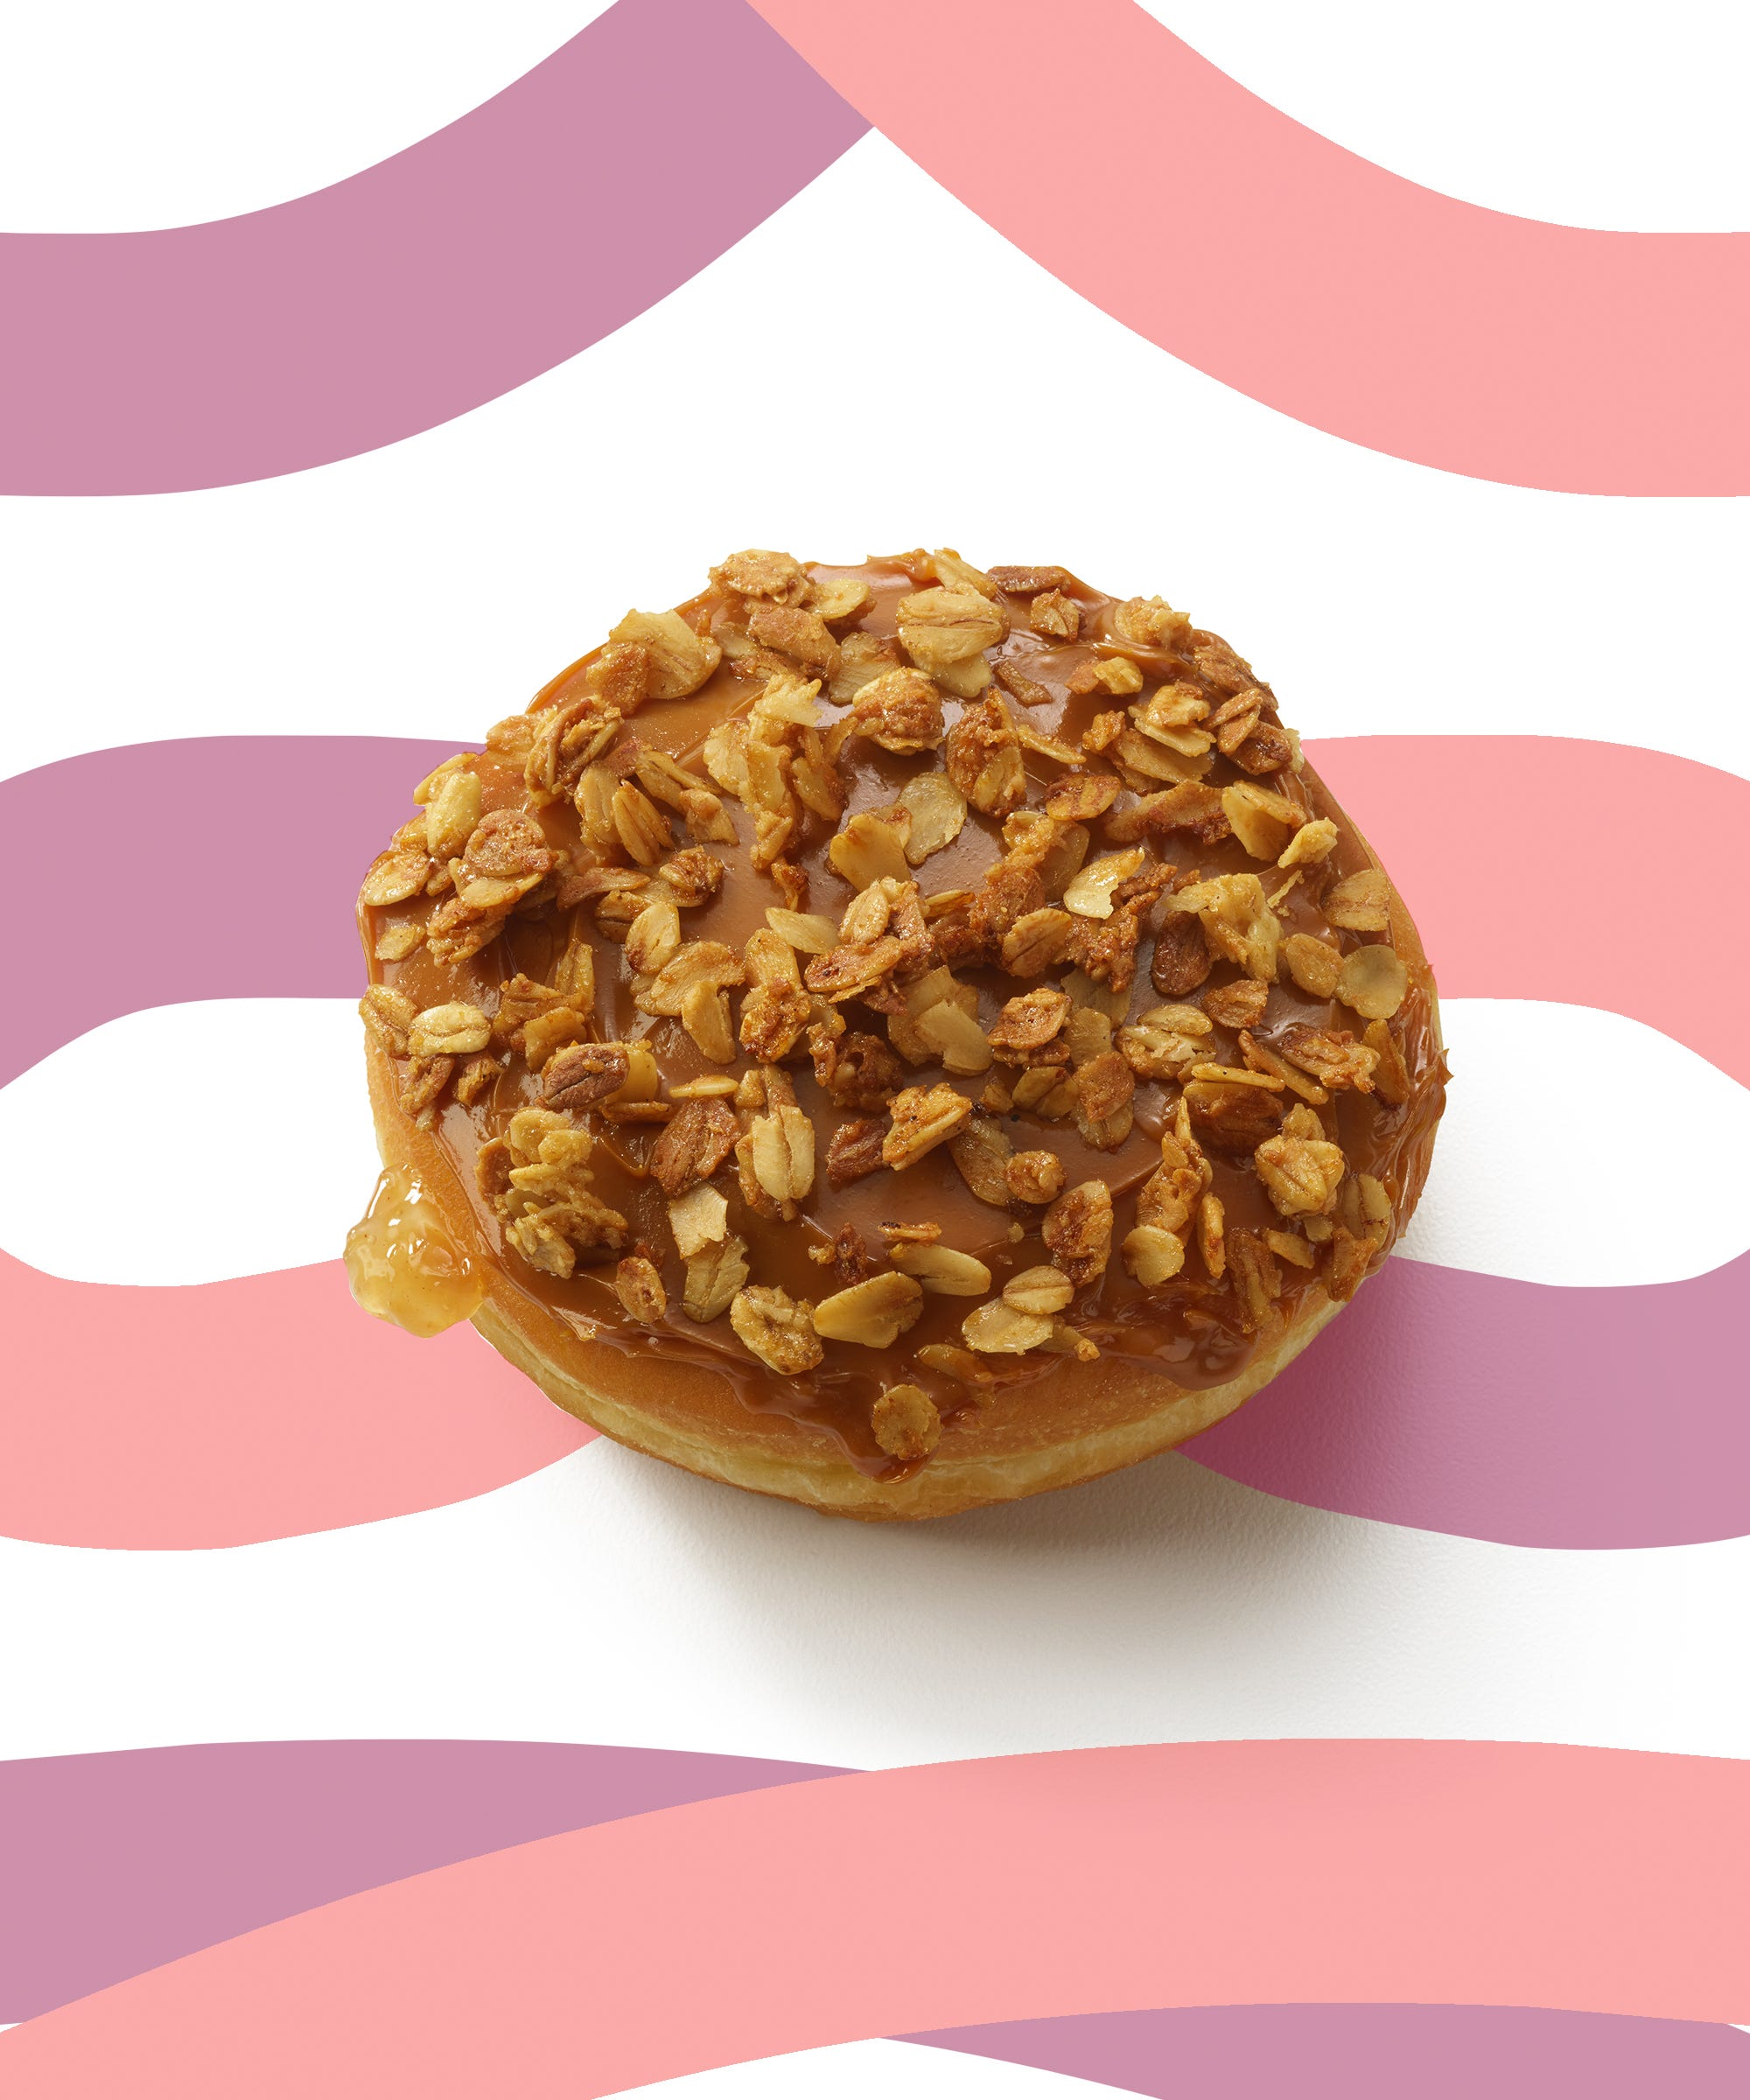 Dunkin Donuts announced its lineup of fall menu items Dunkin Donuts announced its lineup of fall menu items new pics